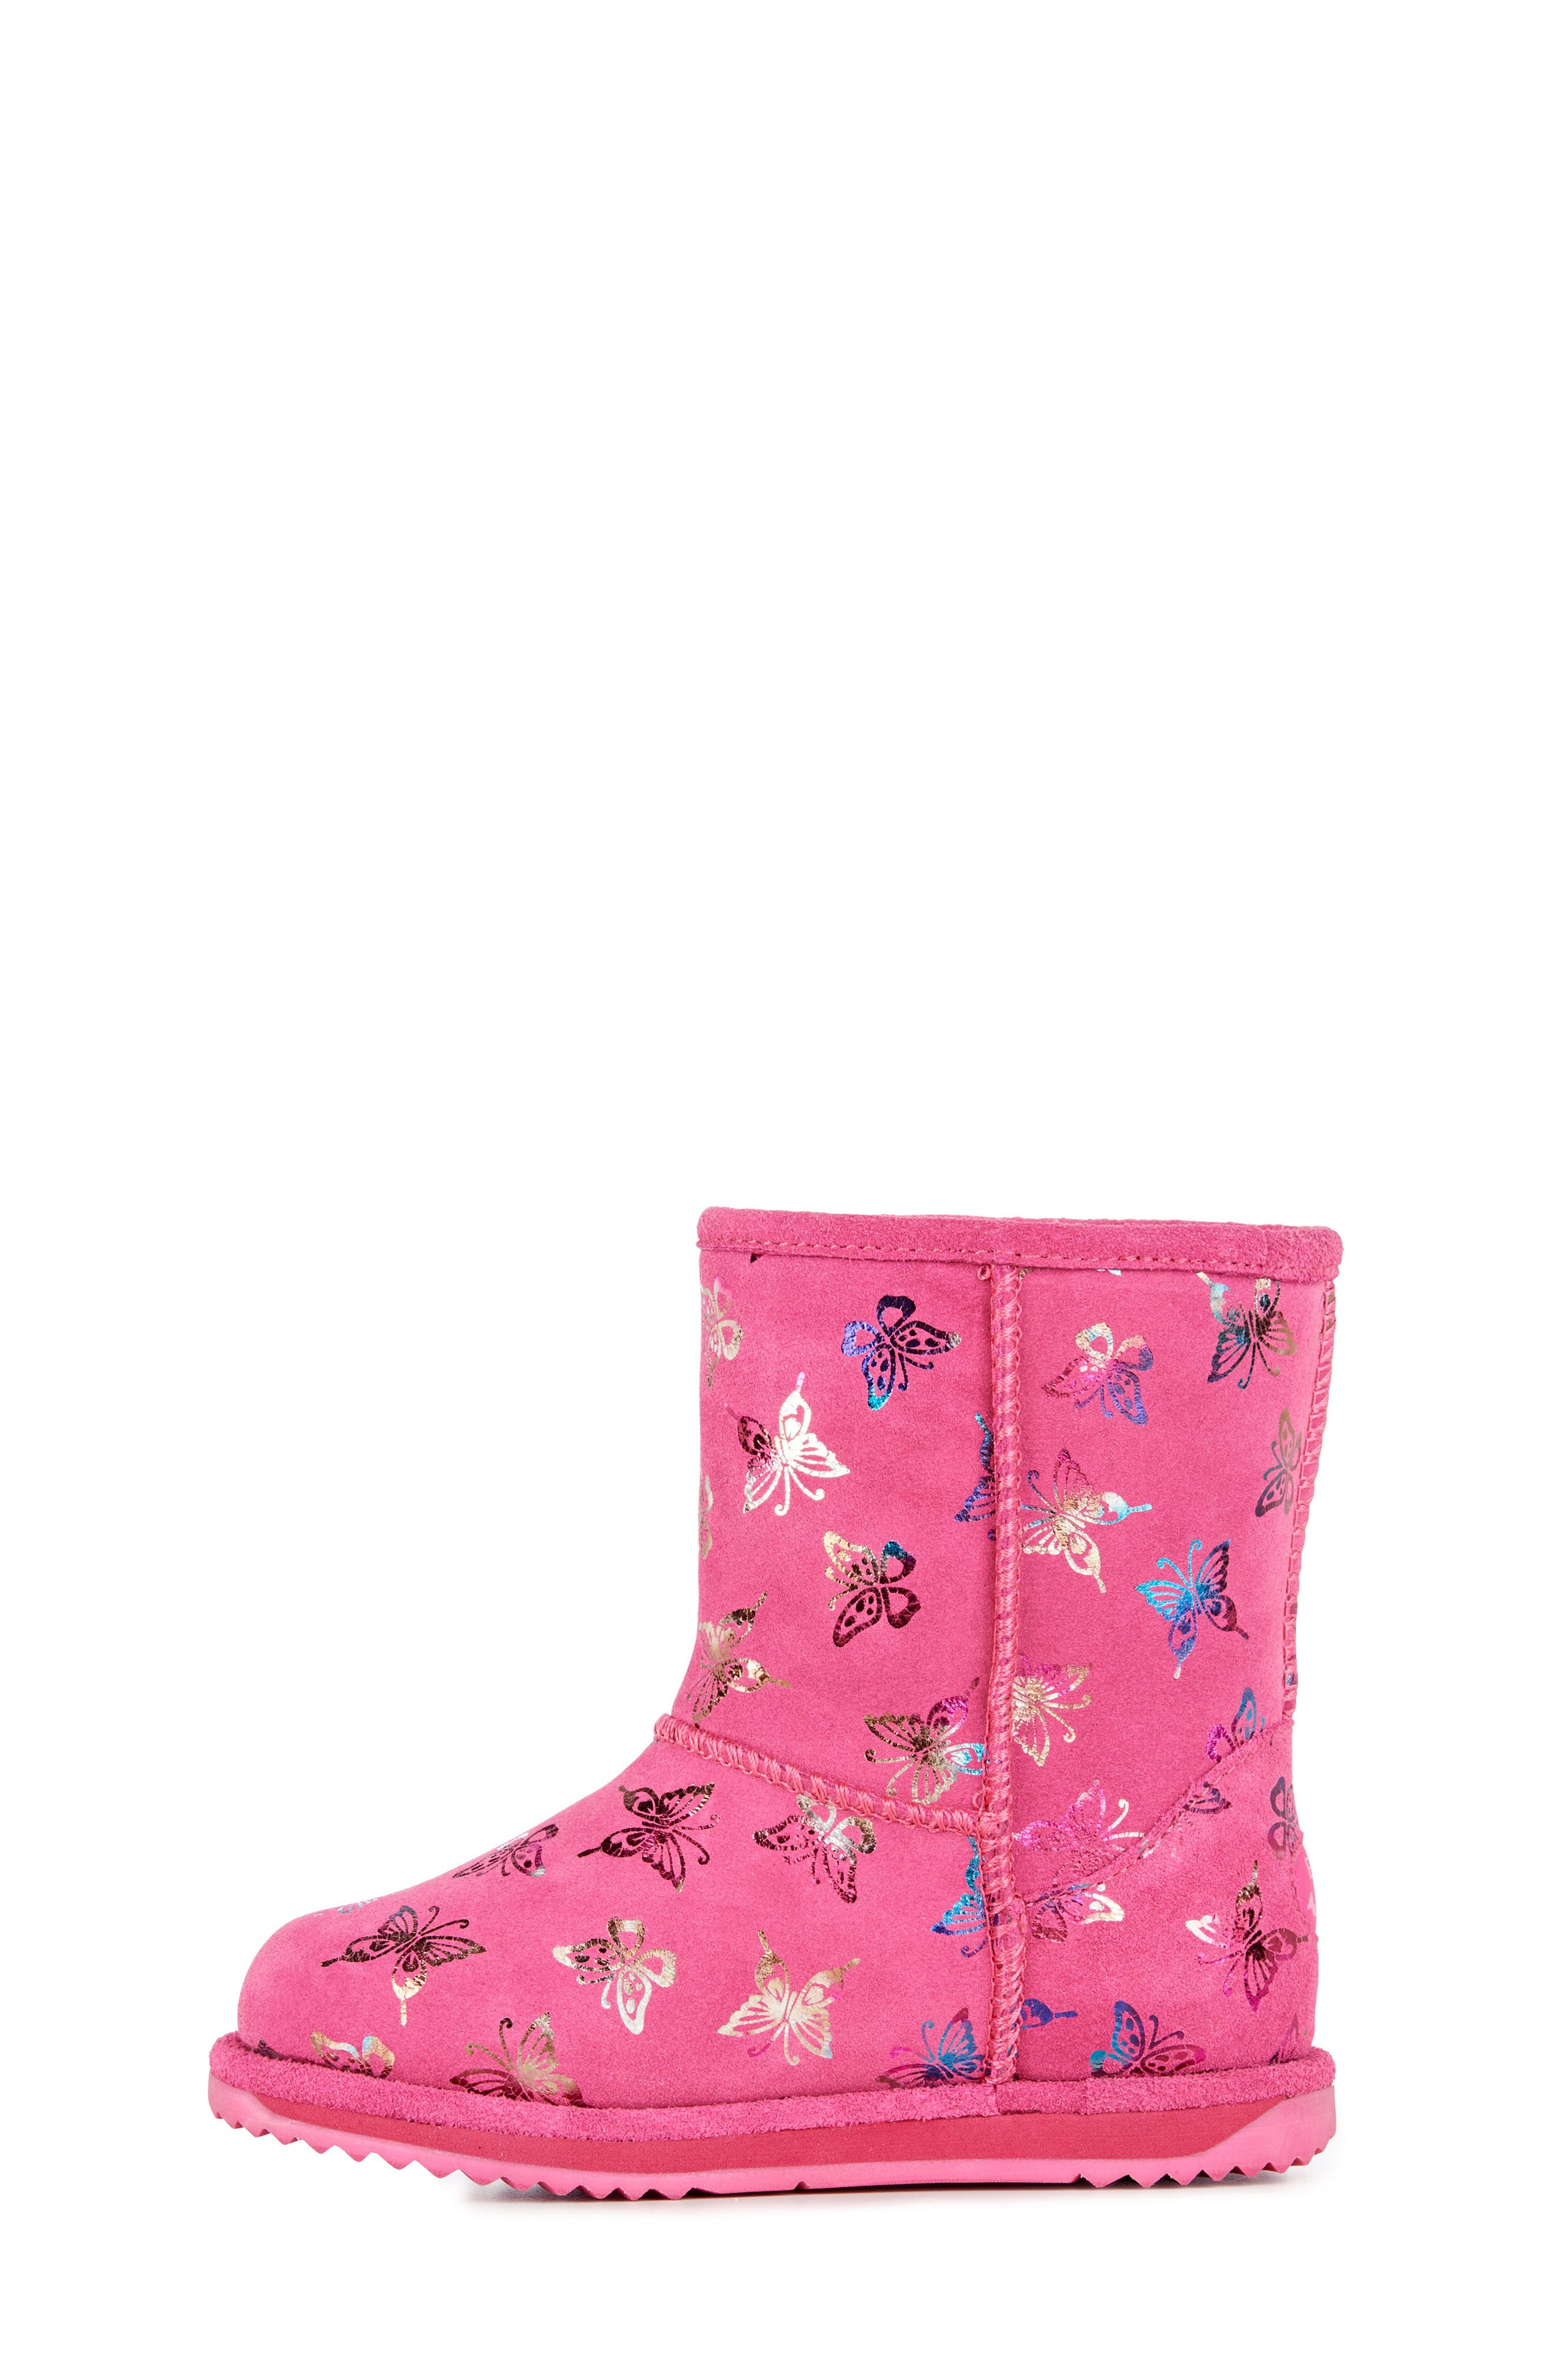 Animal Print Boots,                             Alternate thumbnail 8, color,                             HOT PINK